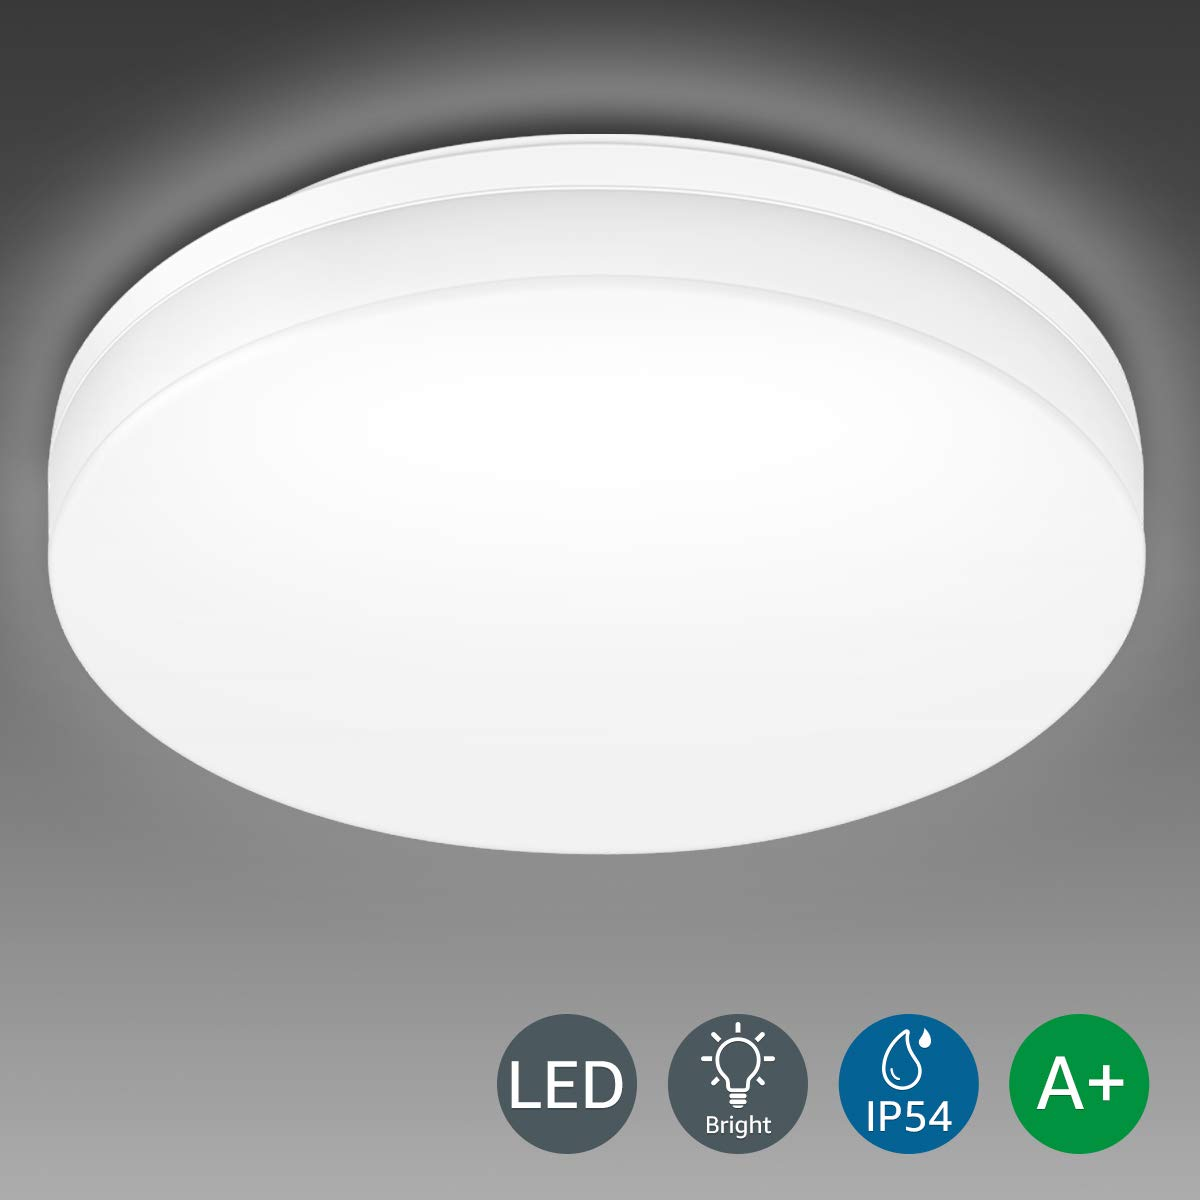 Le 24w led ceiling light 33cm waterproof ip54 2400lm 5000k daylight white 120 beam angle double 100w incandescent lamps replacement flush mount